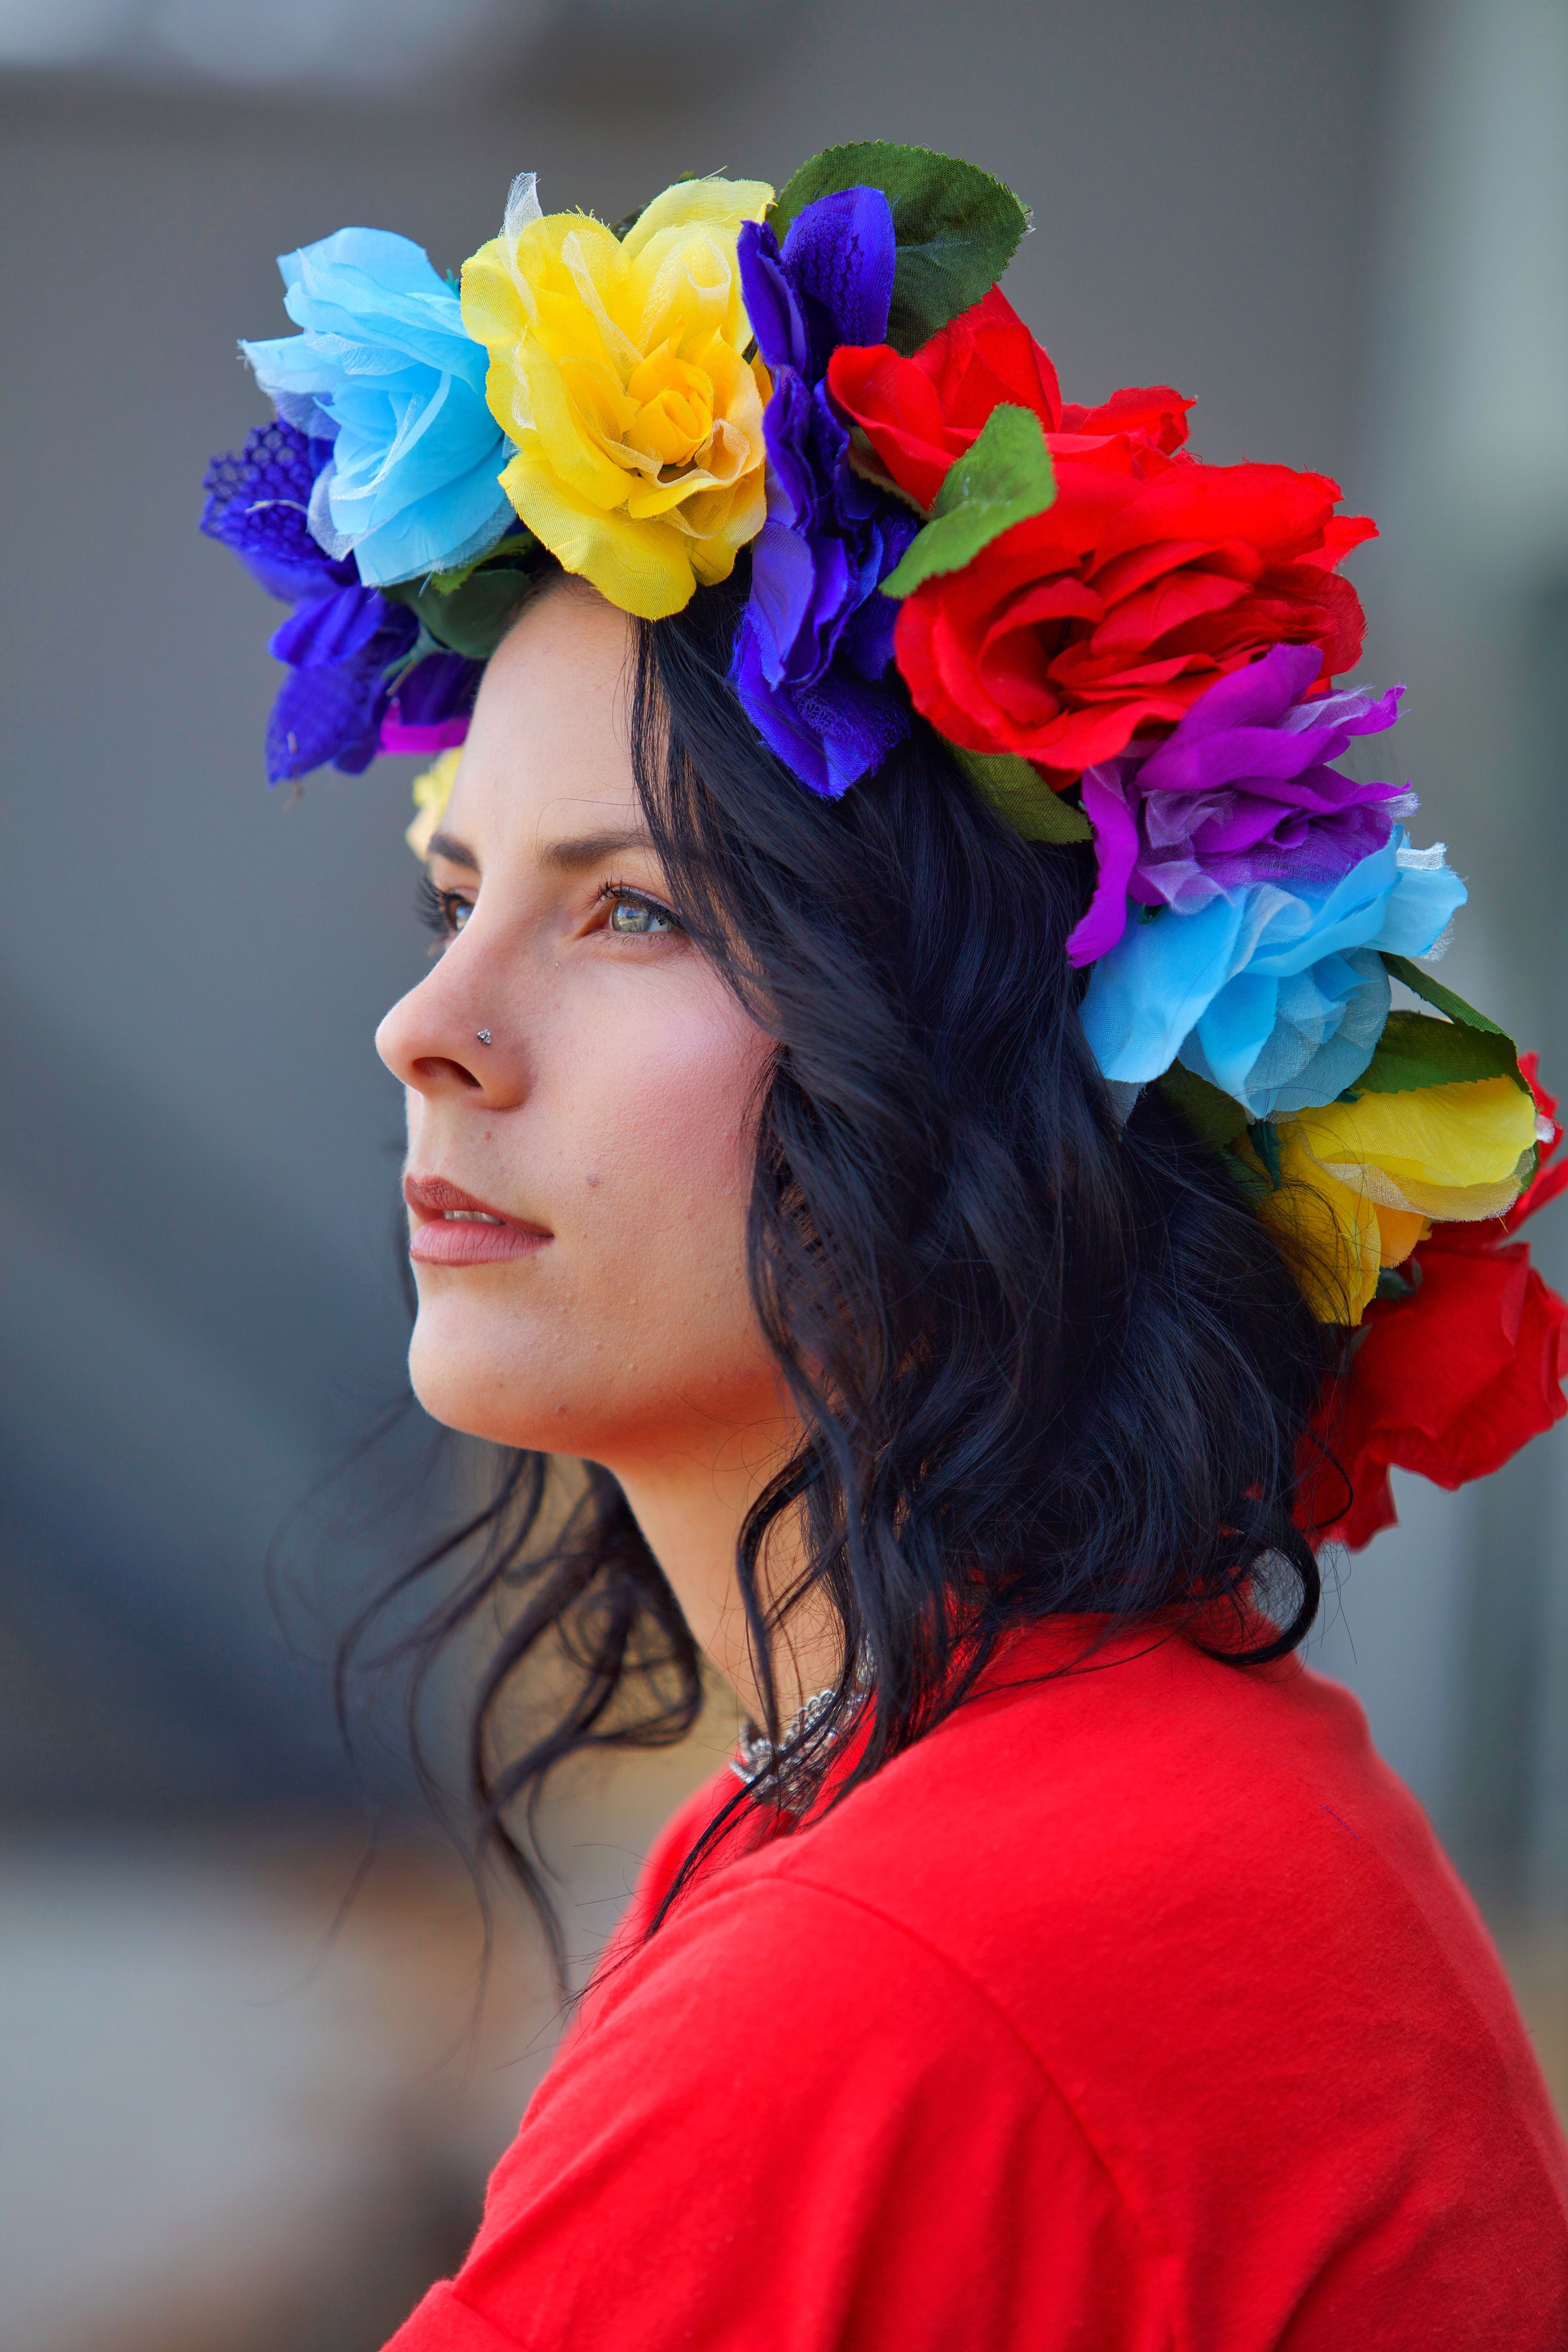 Make A Statement With Floral Crown Fashion Photo Taken By Brian